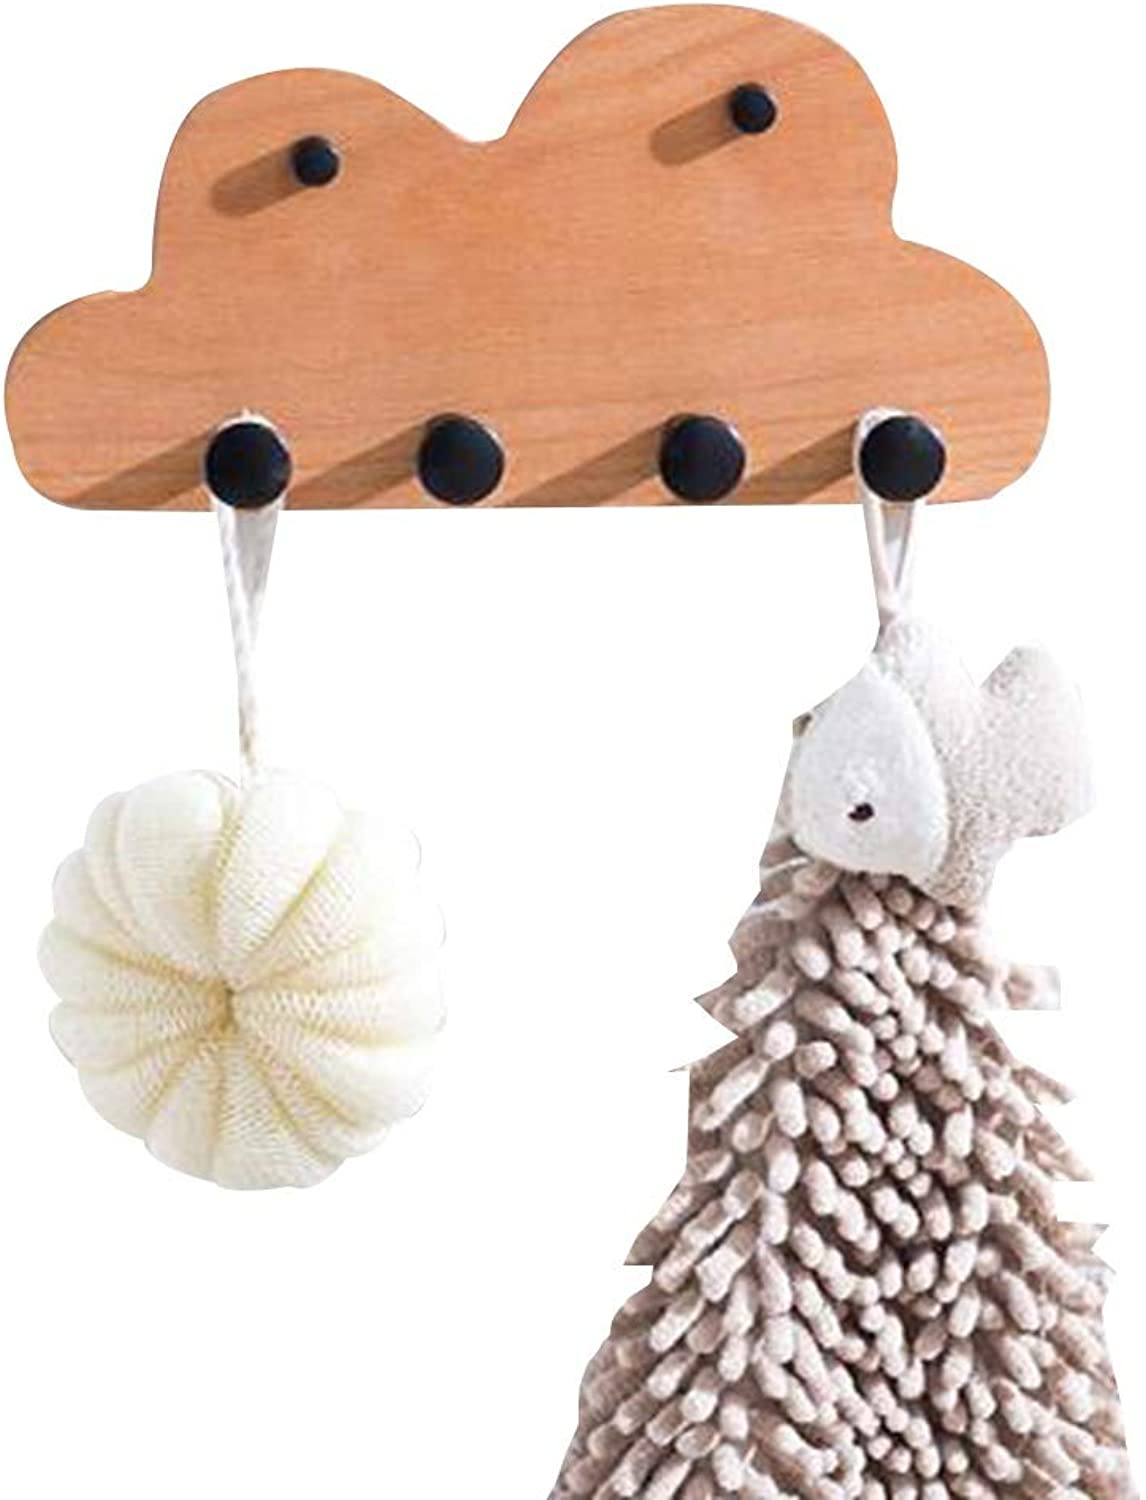 JIAYING Cloud Shape Wall-Mounted Coat Rack, Wooden Hat Rack Entryway Bathroom Organizer with 4 Hooks,for Garment, Hats, Scarves and Umbrellas